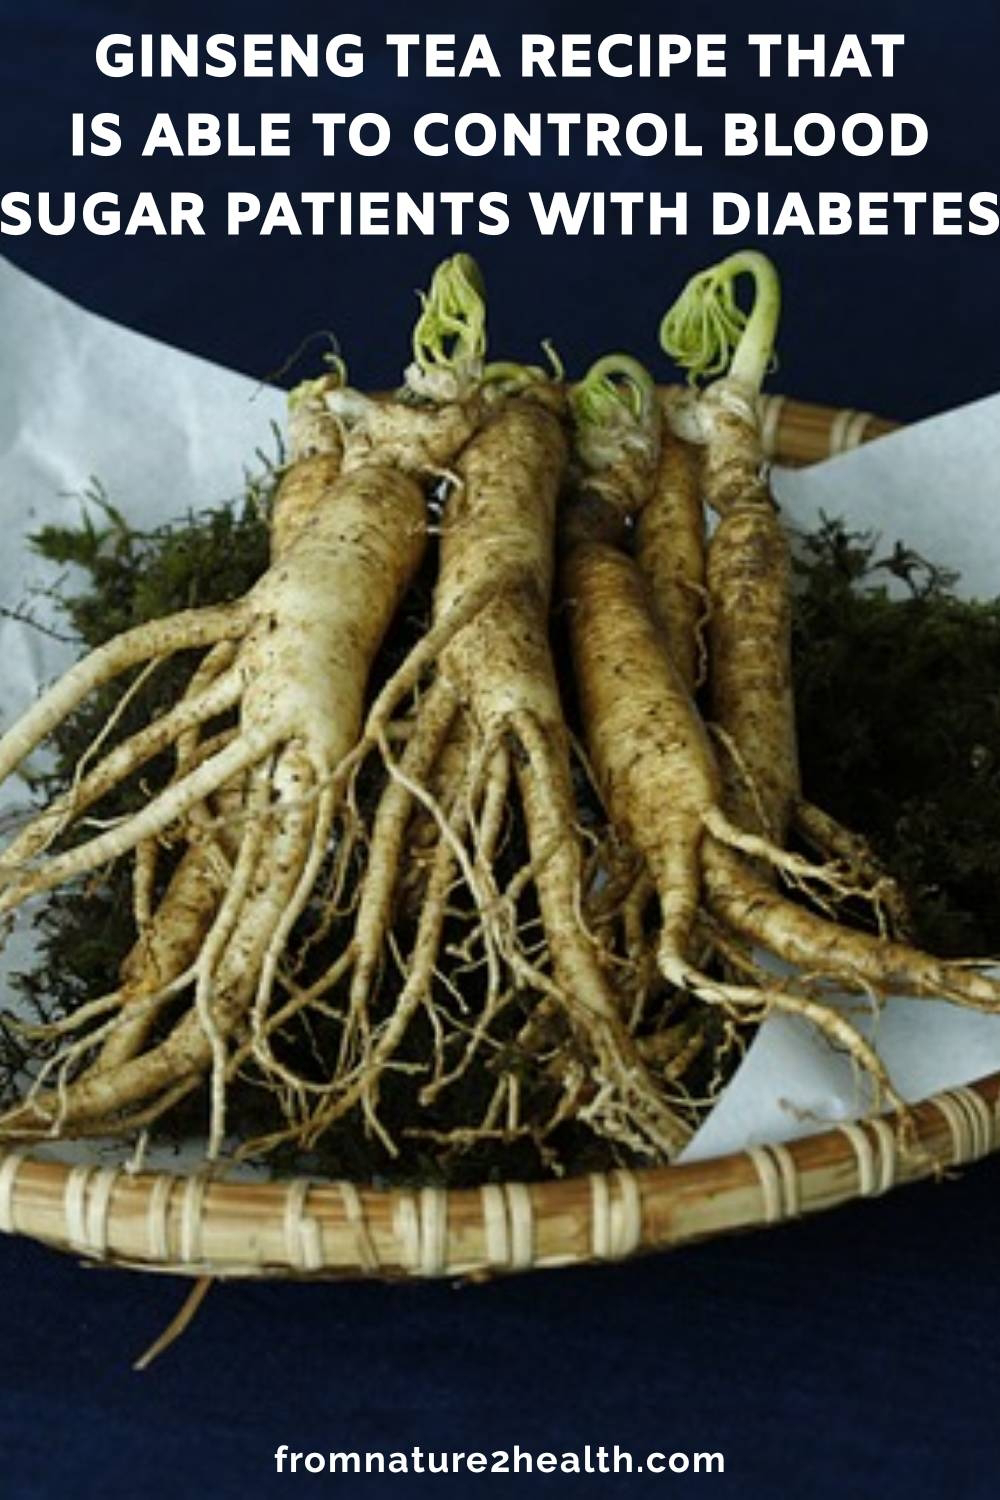 Ginseng Tea Recipe That Is Able To Control Blood Sugar Patients With Diabetes